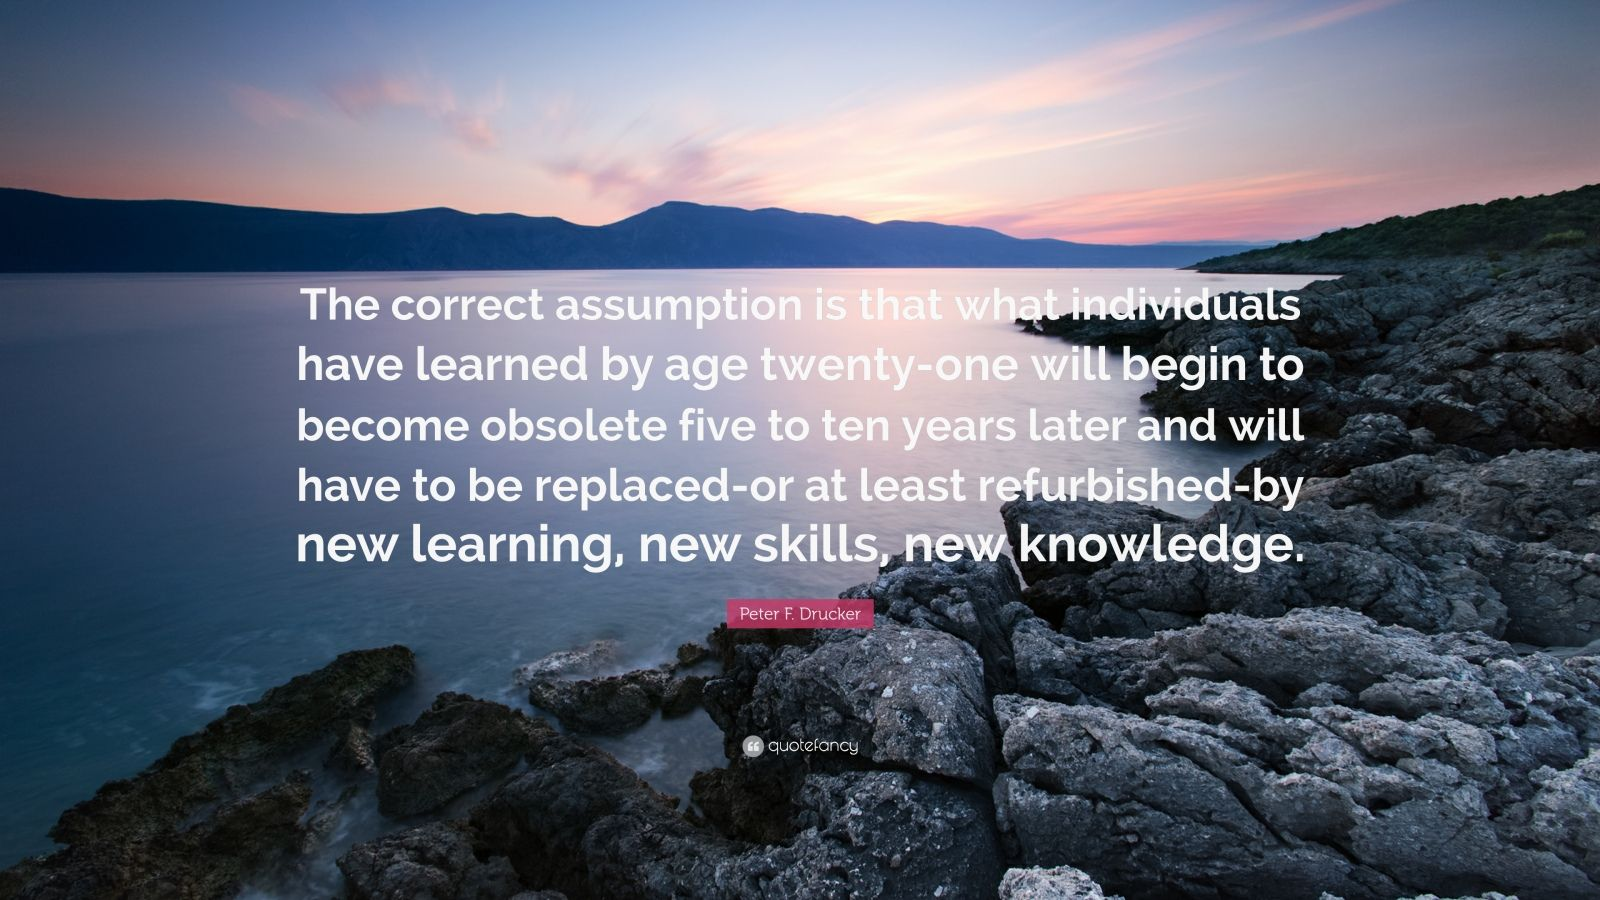 """Peter F. Drucker Quote: """"The correct assumption is that what individuals have learned by age twenty-one will begin to become obsolete five to ten years later and will have to be replaced-or at least refurbished-by new learning, new skills, new knowledge."""""""